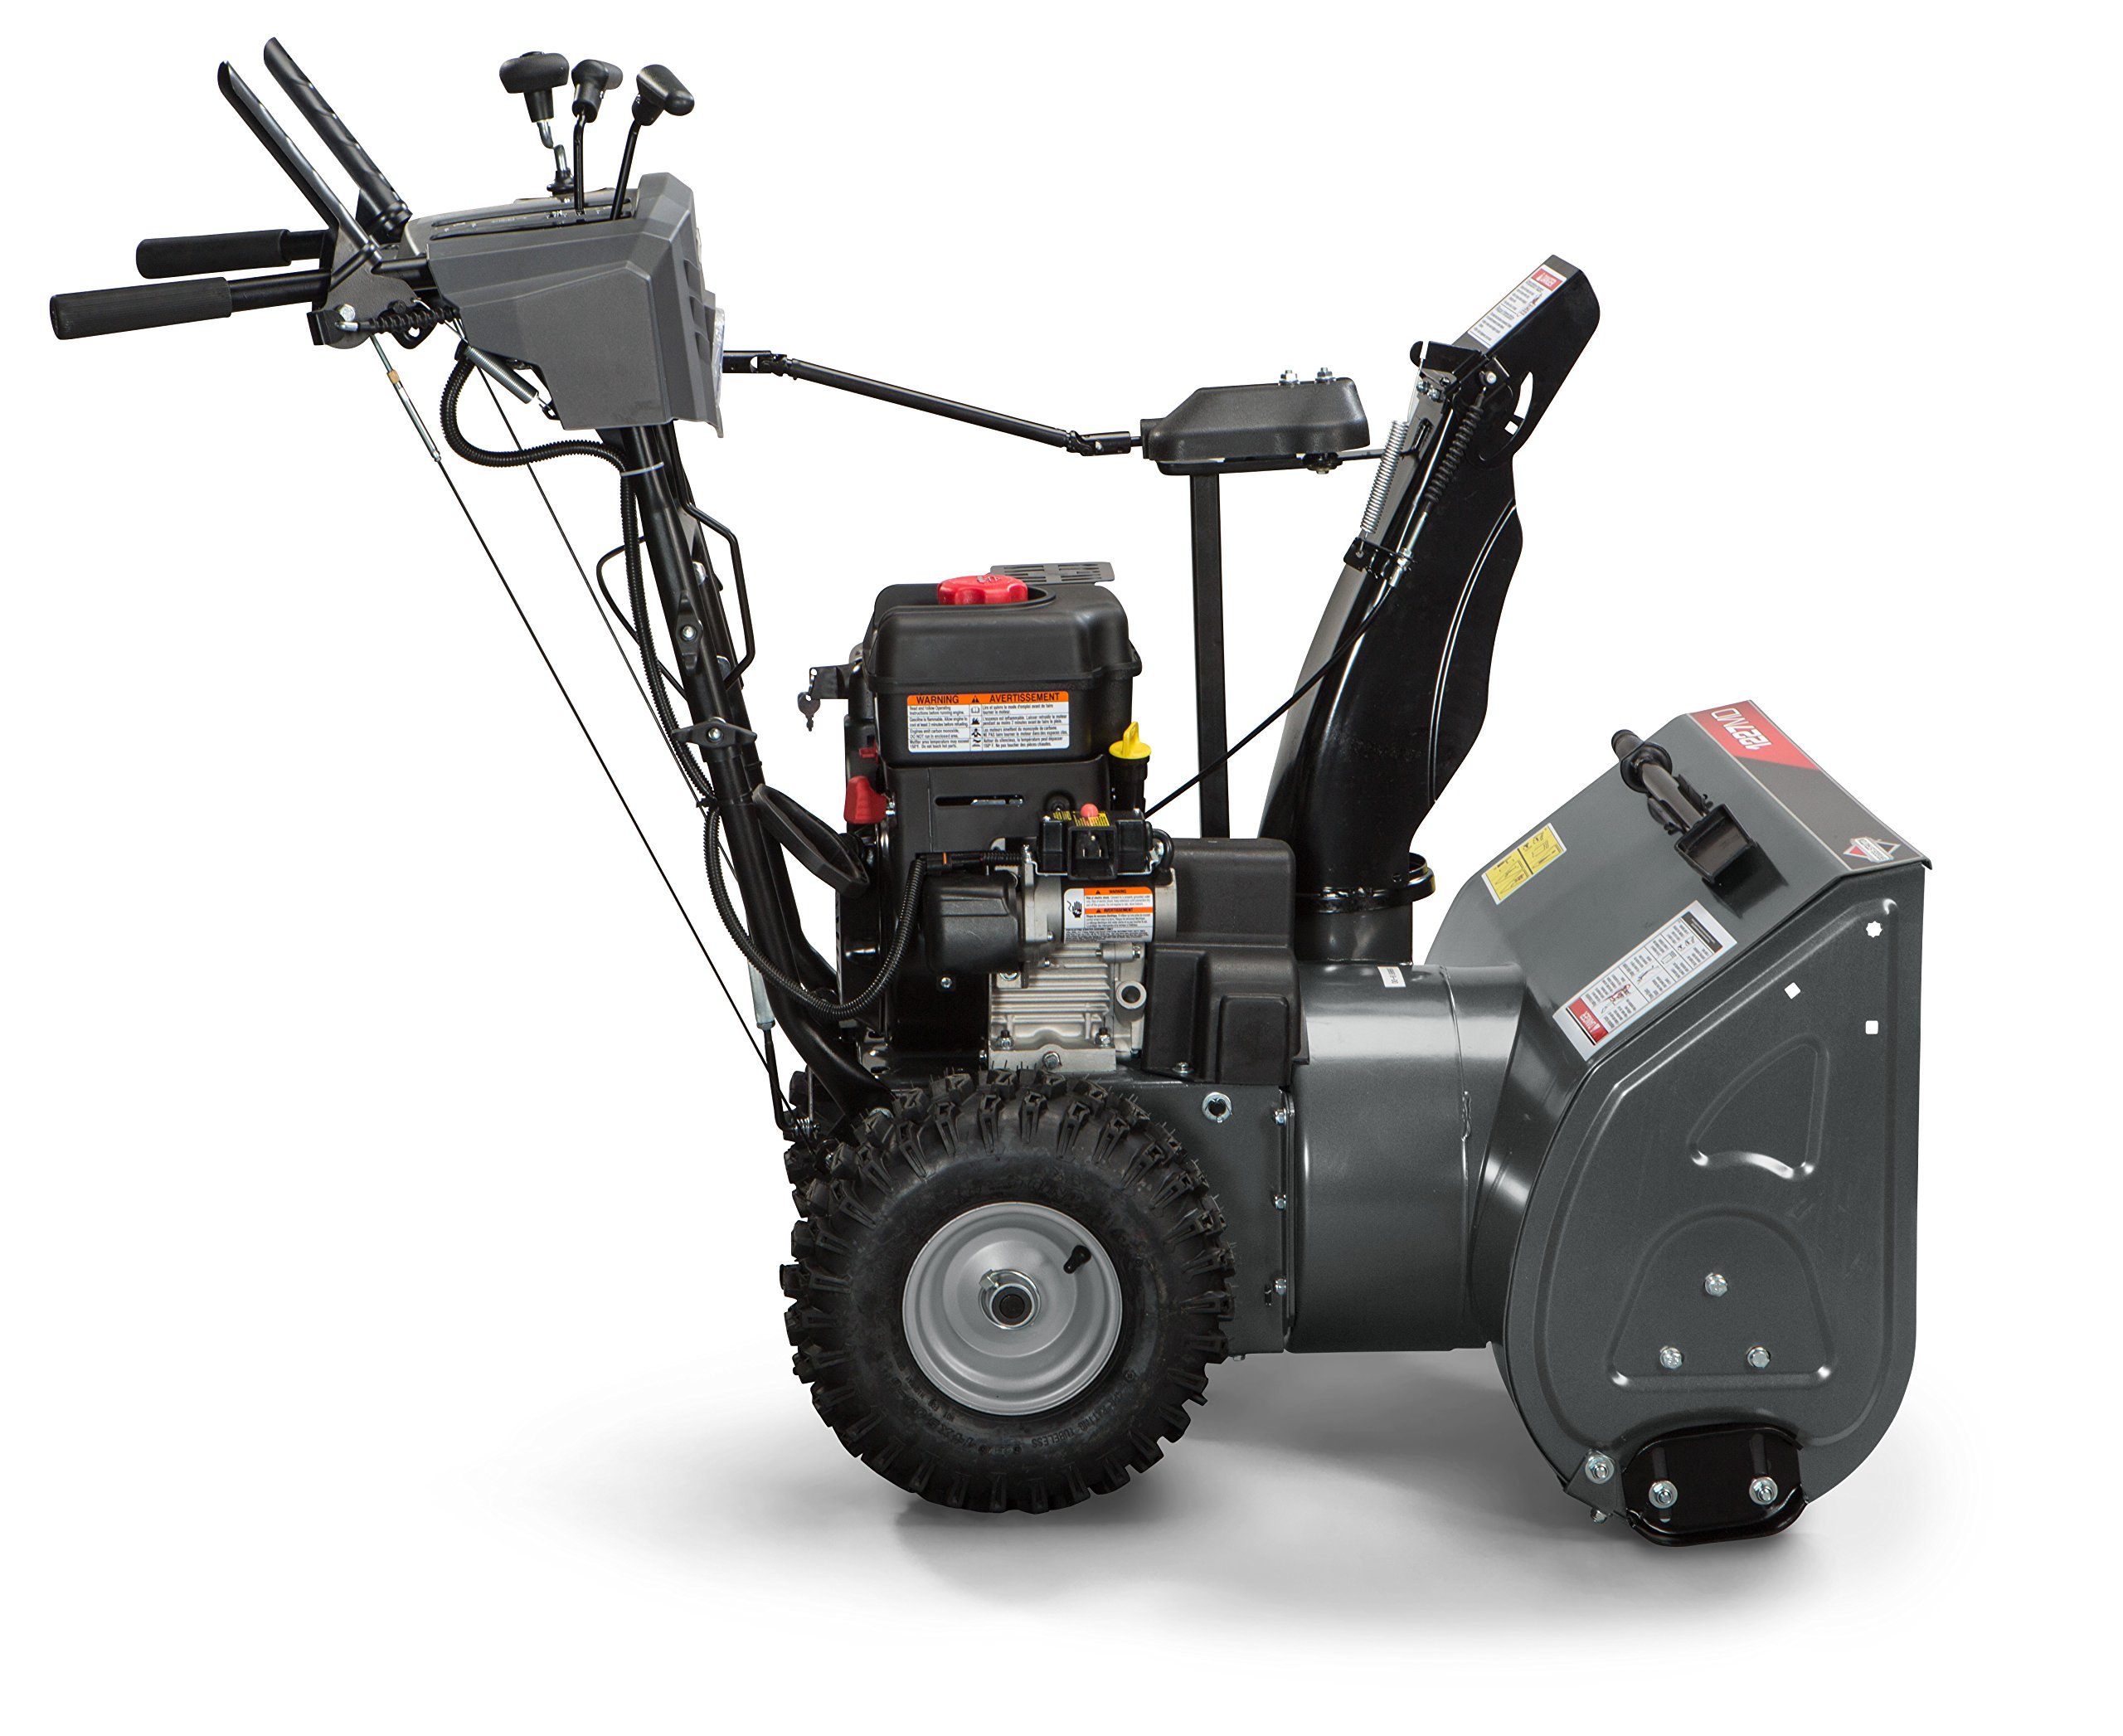 Briggs and Stratton 1696619 Dual-Stage Snow Thrower with 250cc Engine and Electric Start by Briggs & Stratton